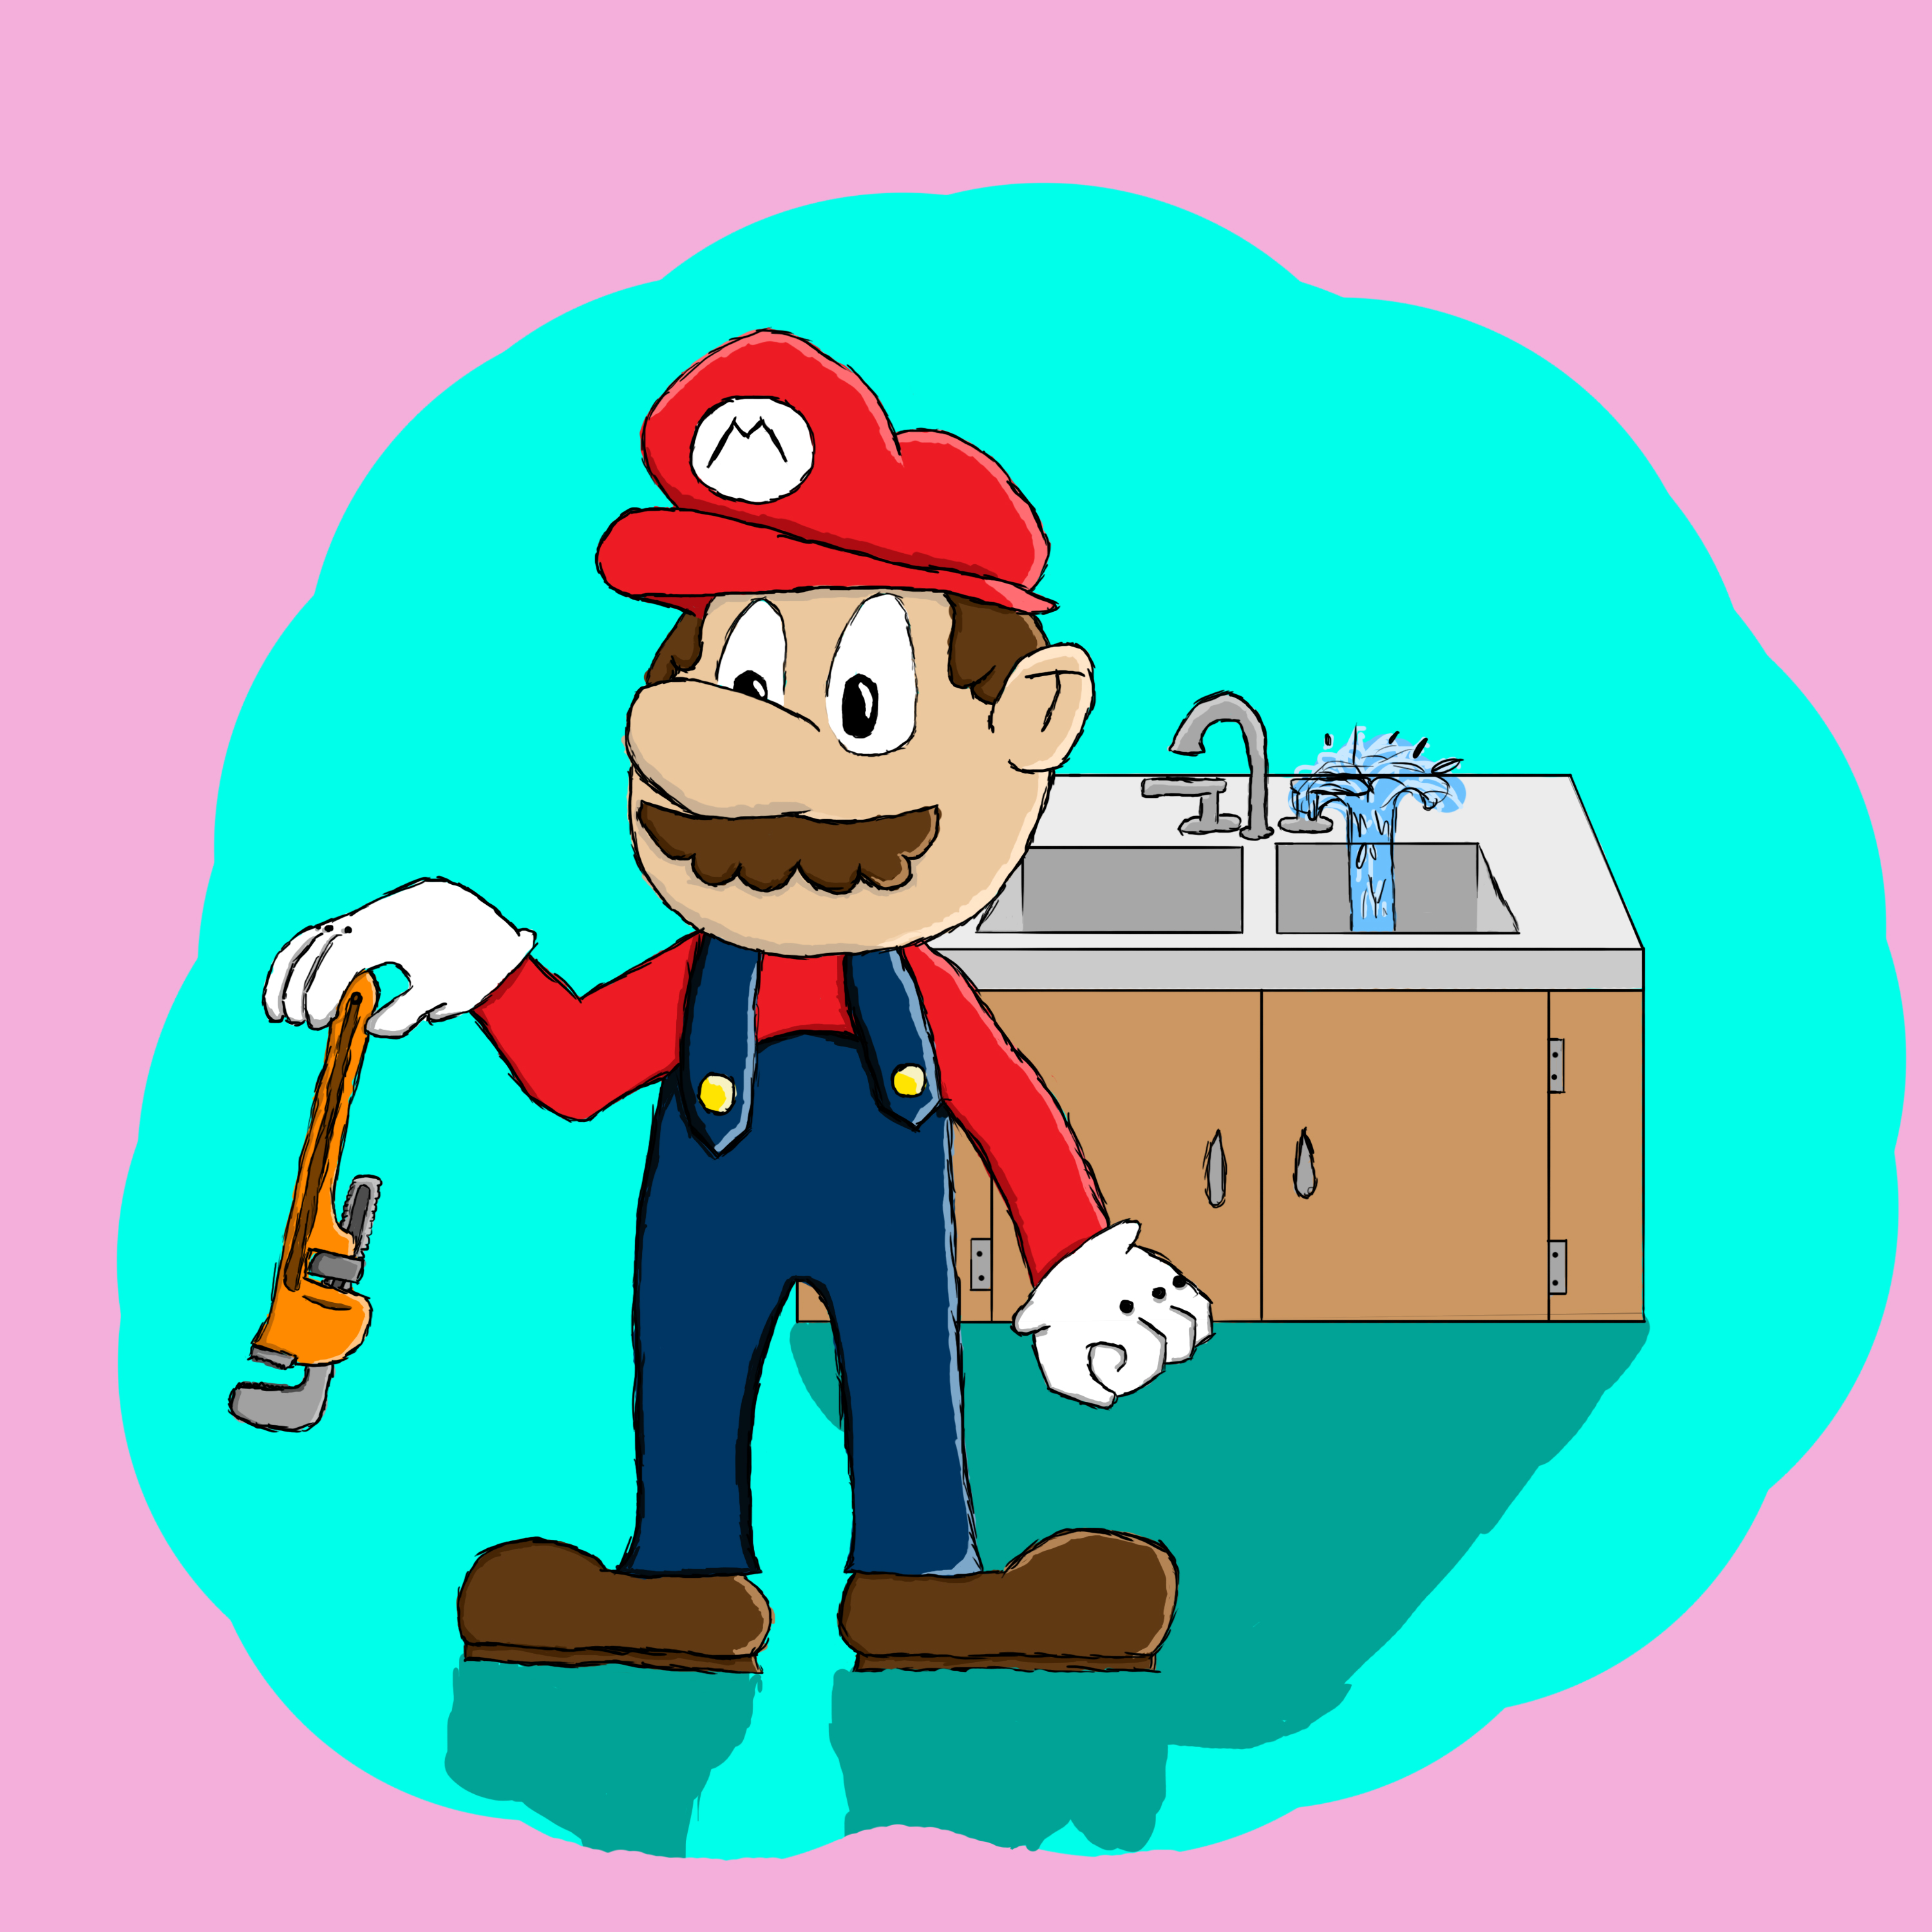 Mario Can't Figure it Out